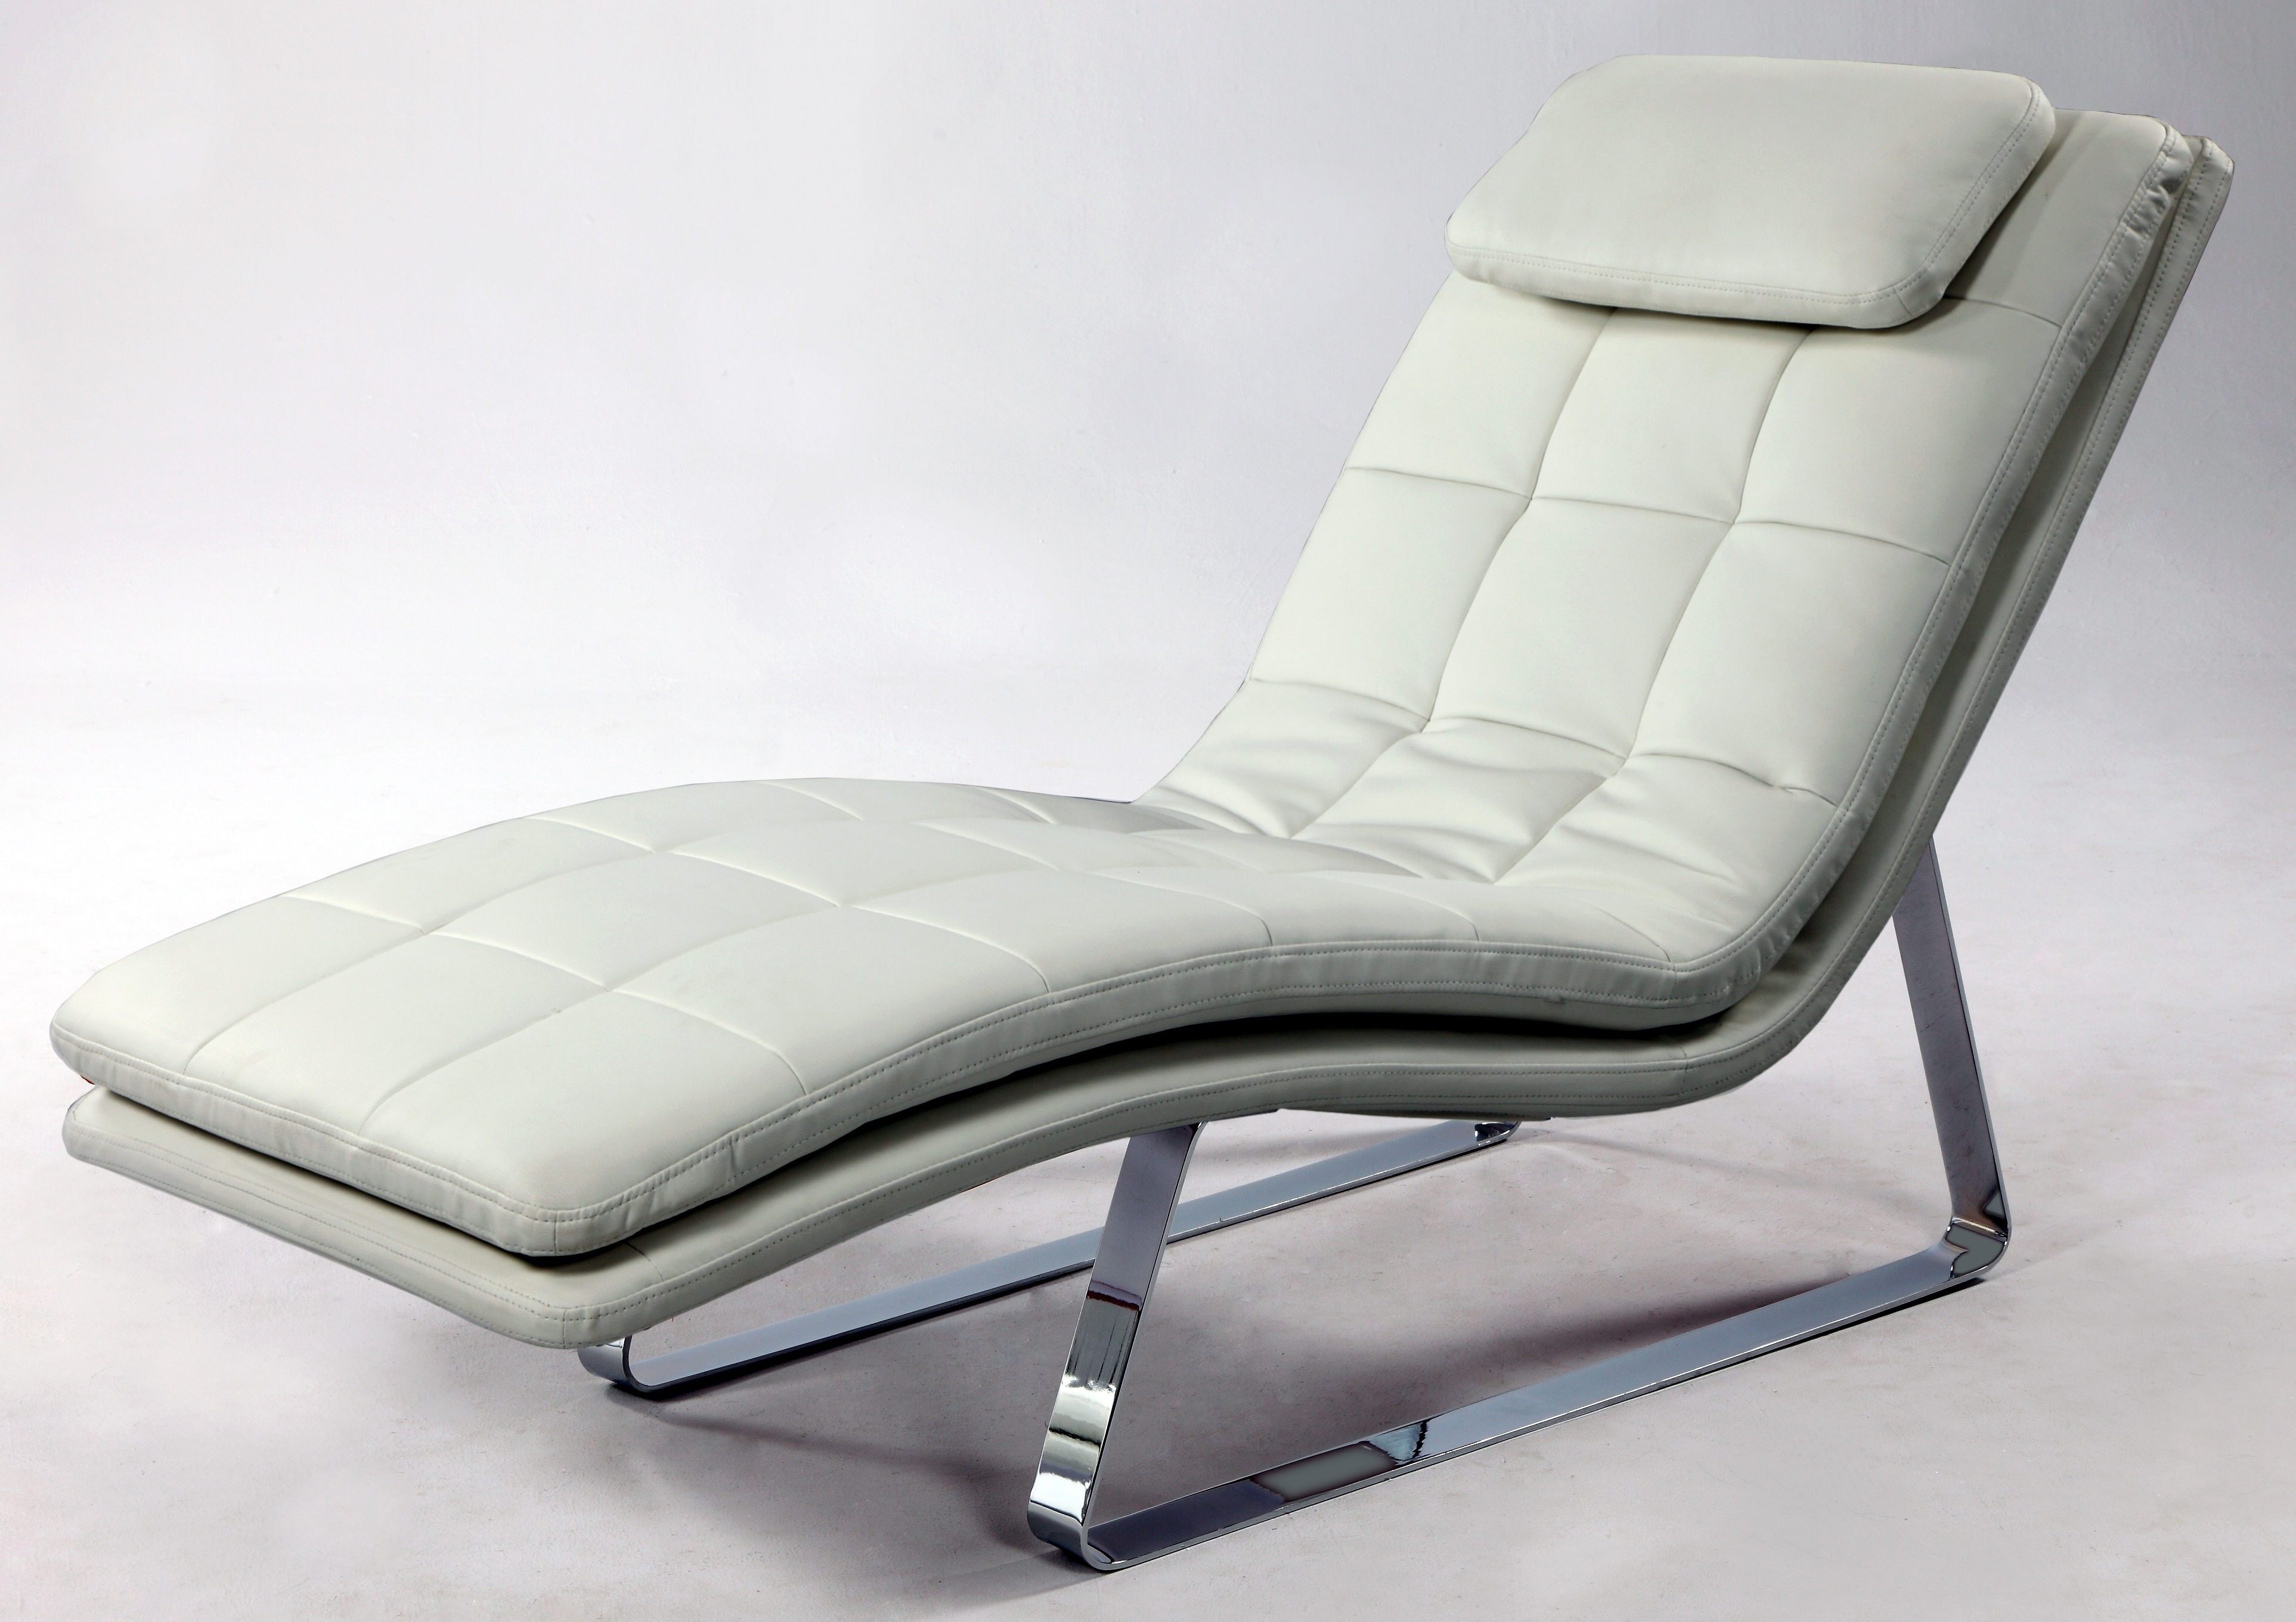 Contemporary Chaise Lounges Within Well Liked Full Bonded Leather Tufted Chaise Lounge With Chrome Legs New York (View 11 of 15)